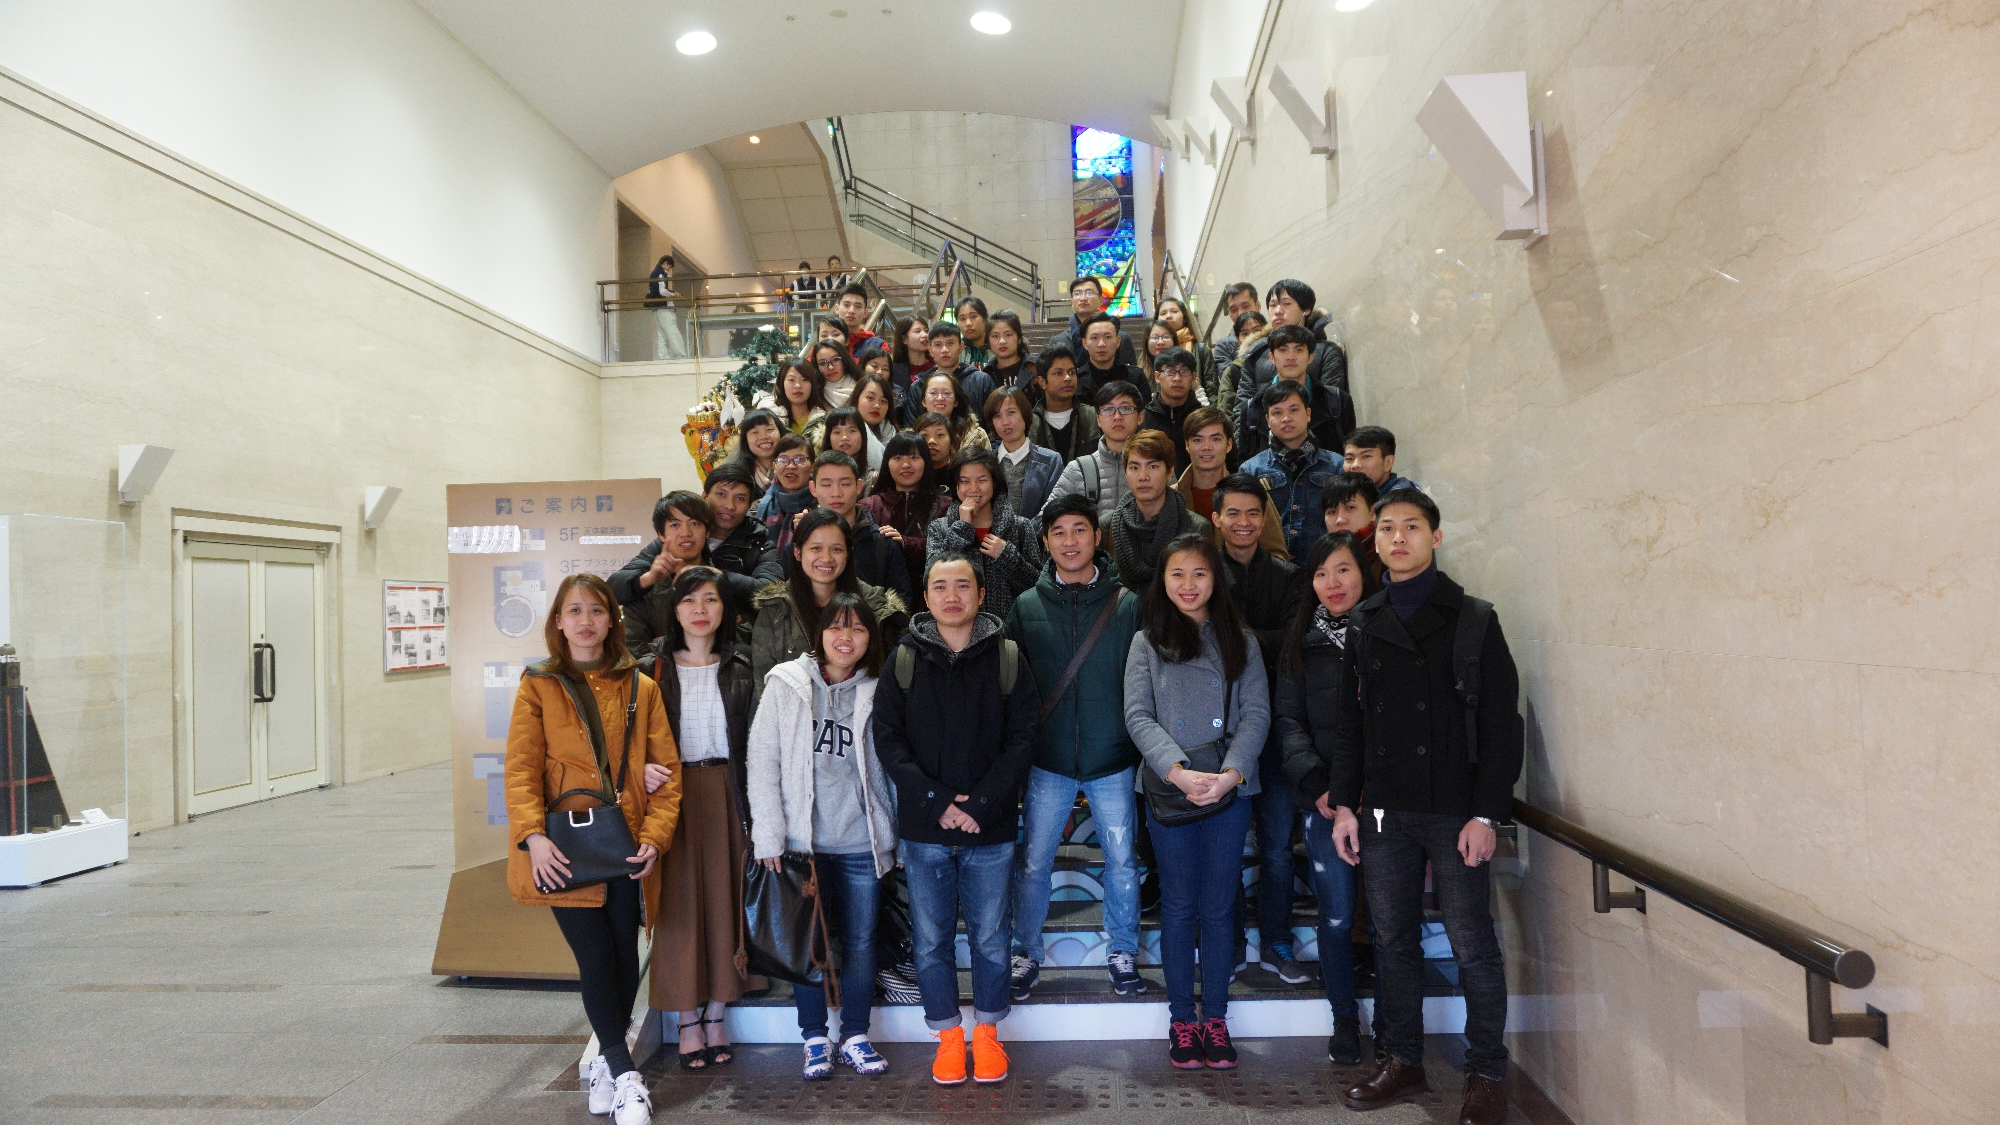 2016/2  課外授業 プラネタリウム School field trip at the Katsushika planetarium